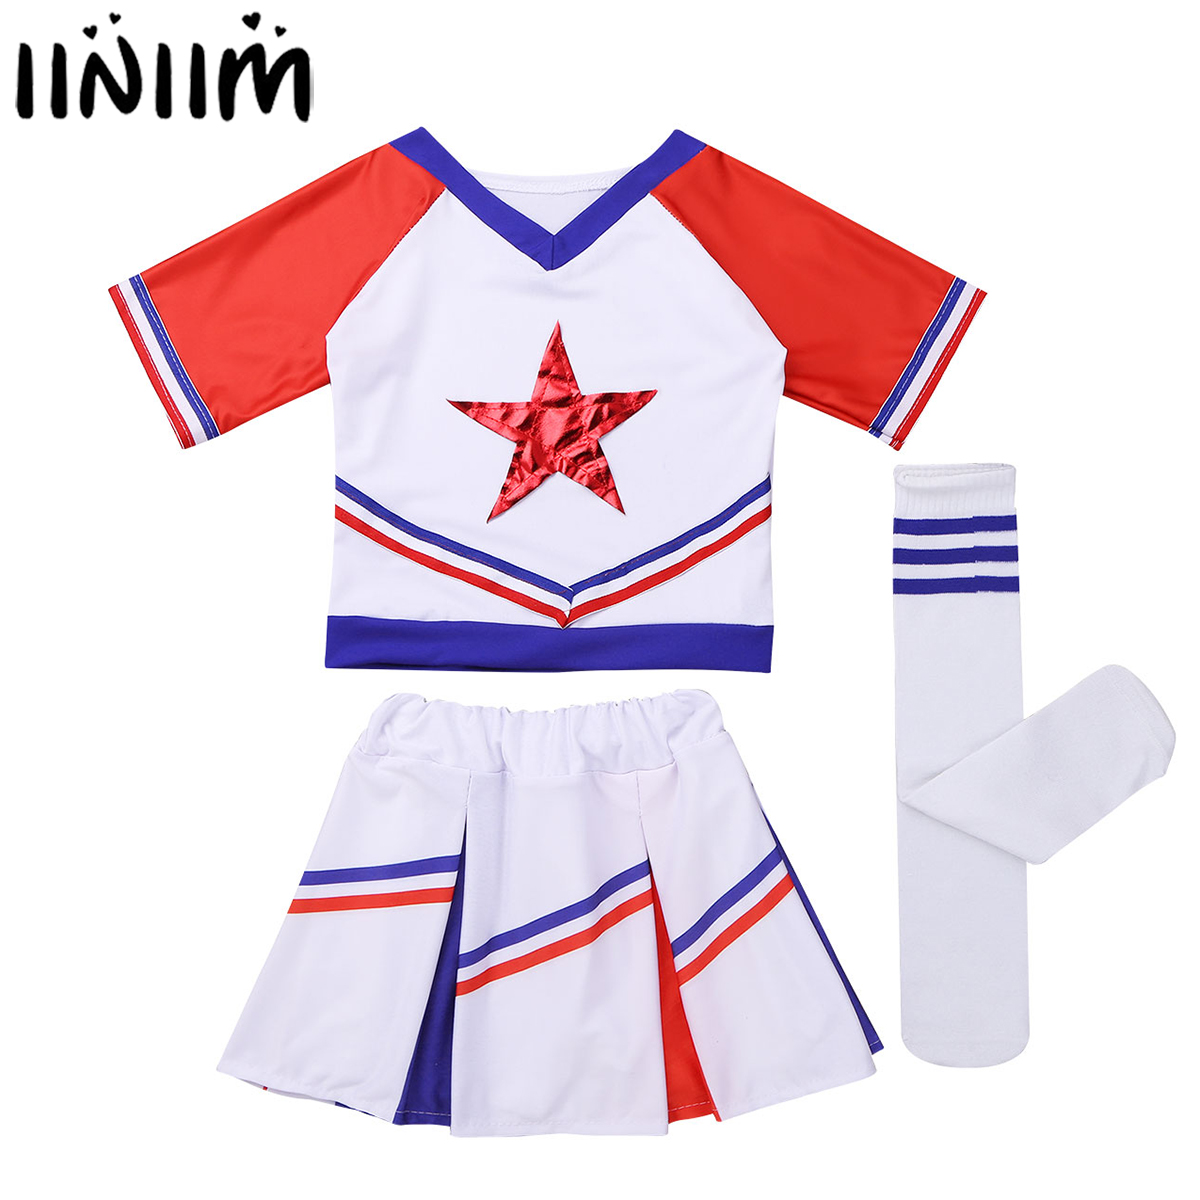 iiniim Kids Girls Cheerleader Costume Stars Applique Tops T-shirt with Skirt and Socks Modern Dancewear Set for Halloween Party